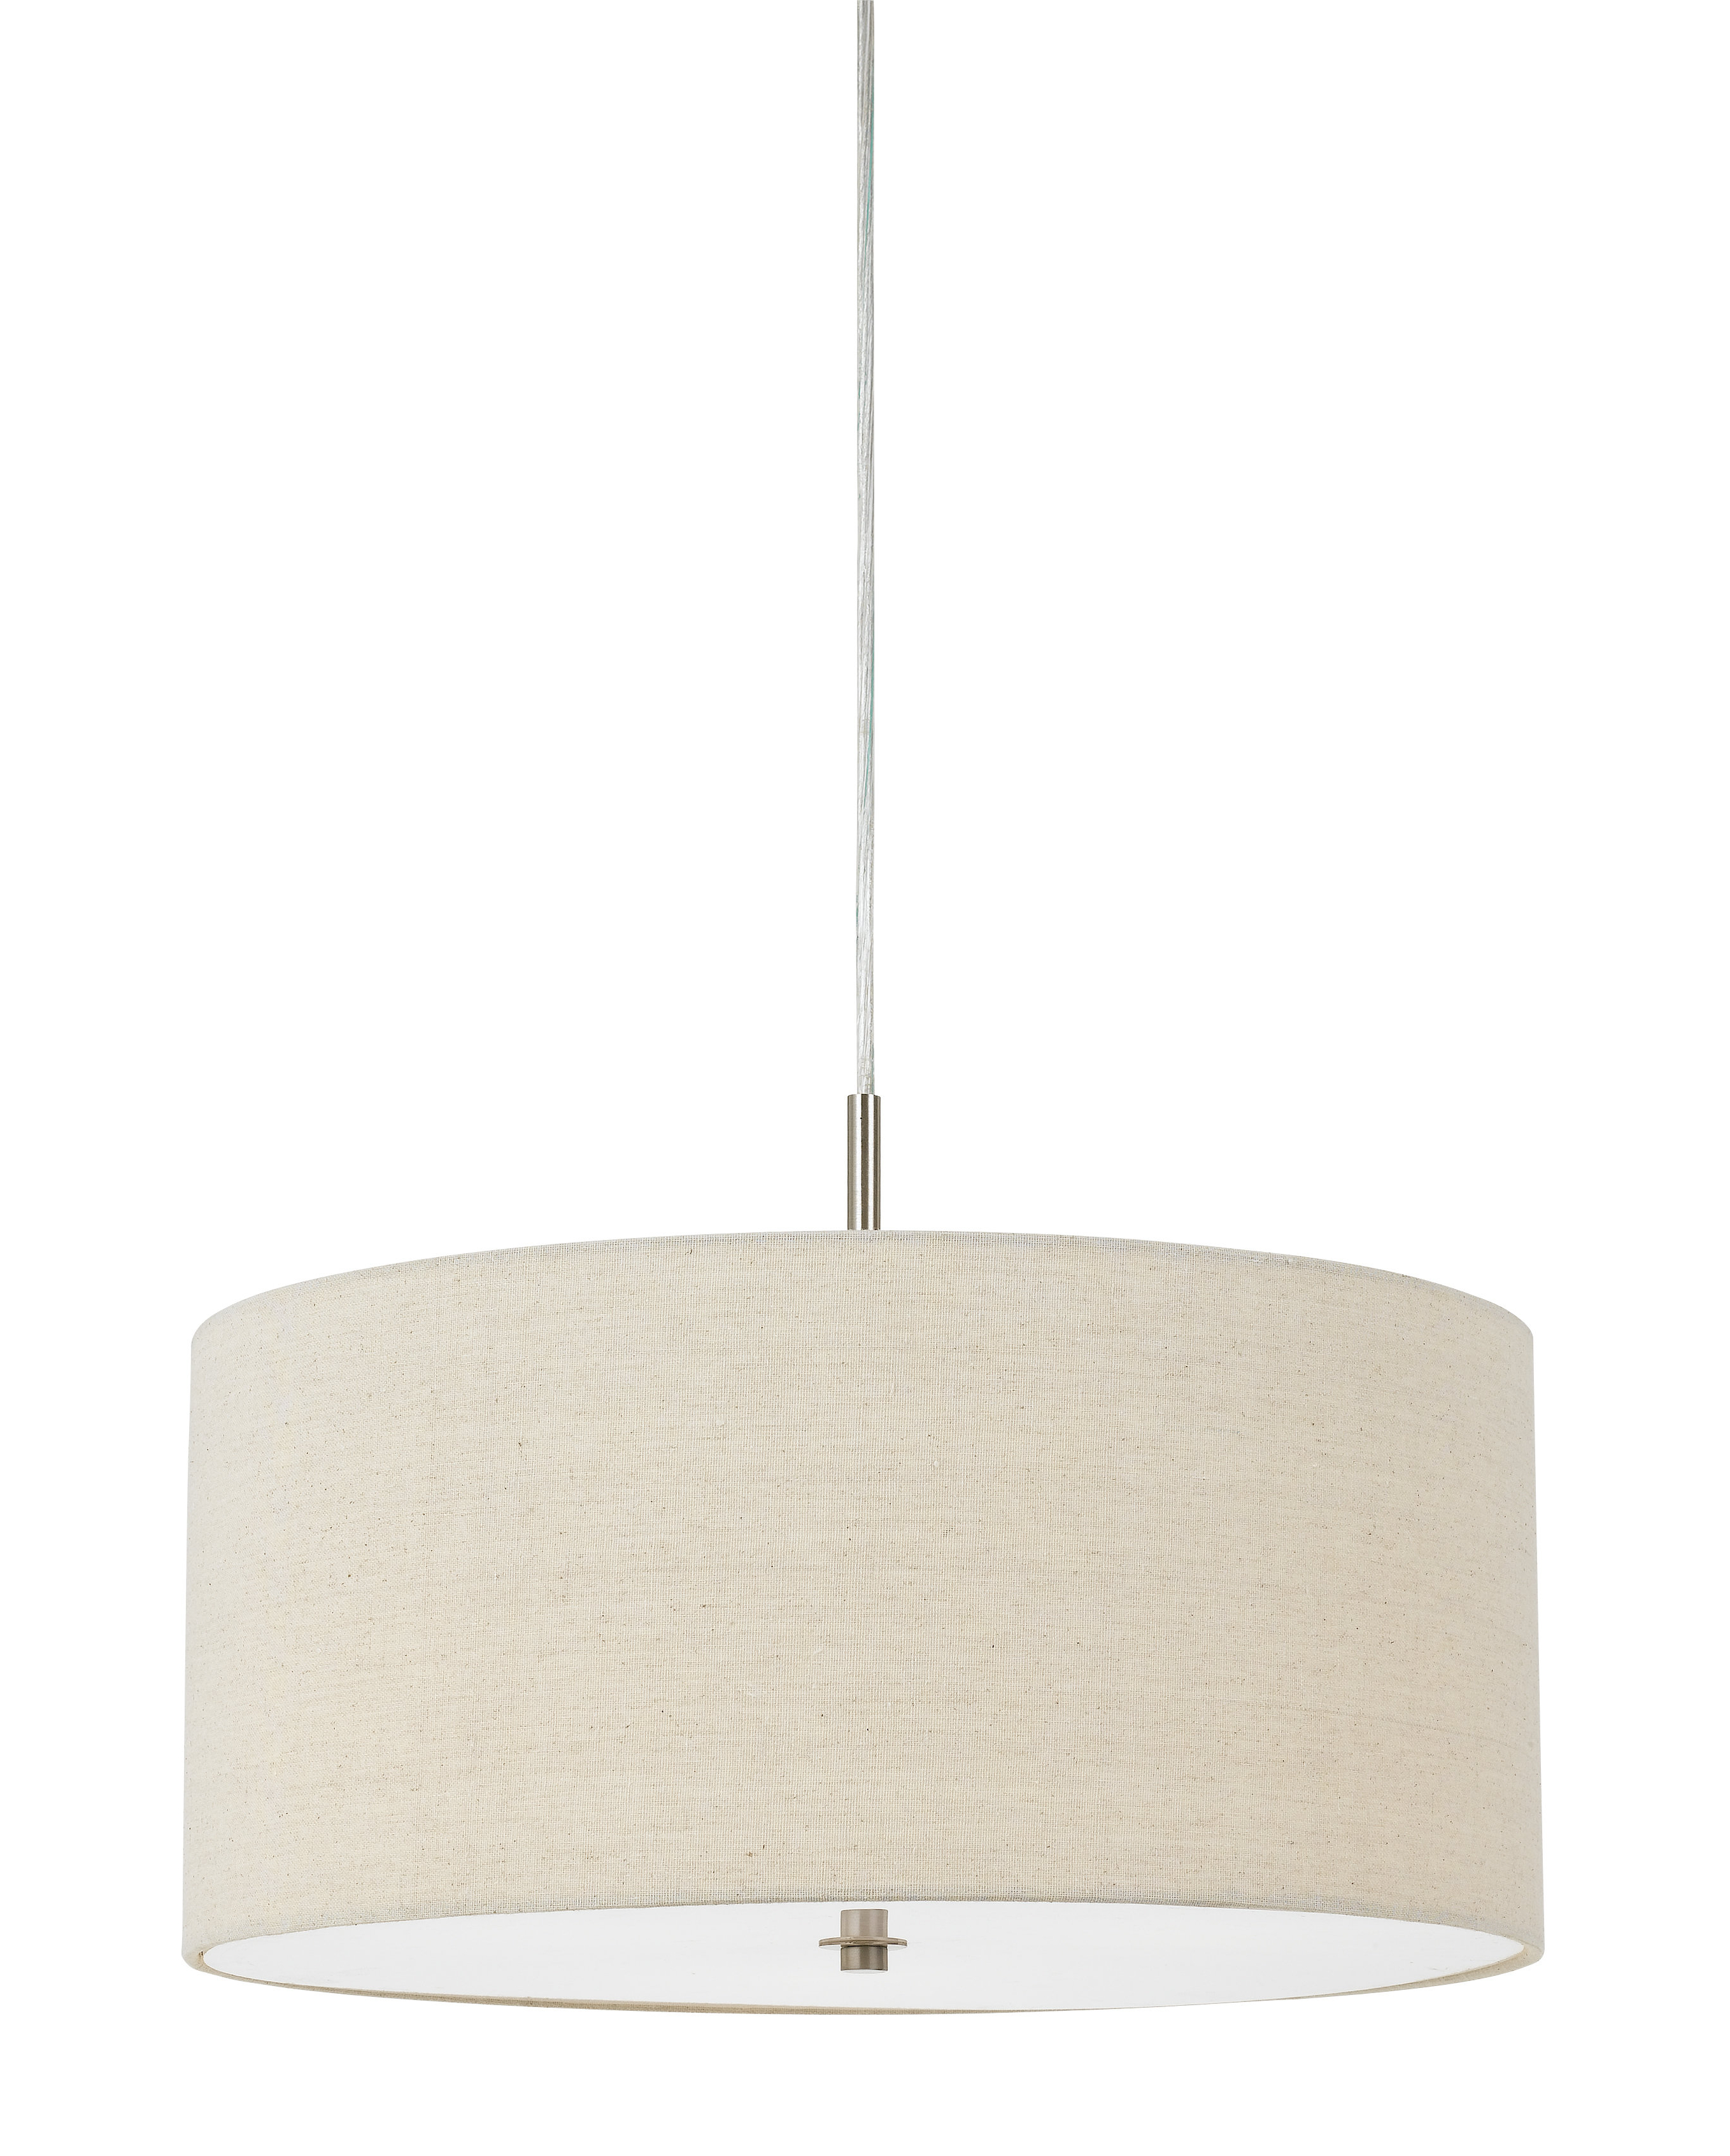 Latest Tristian 3 Light Drum Chandelier Throughout Kasey 3 Light Single Drum Pendants (View 18 of 25)